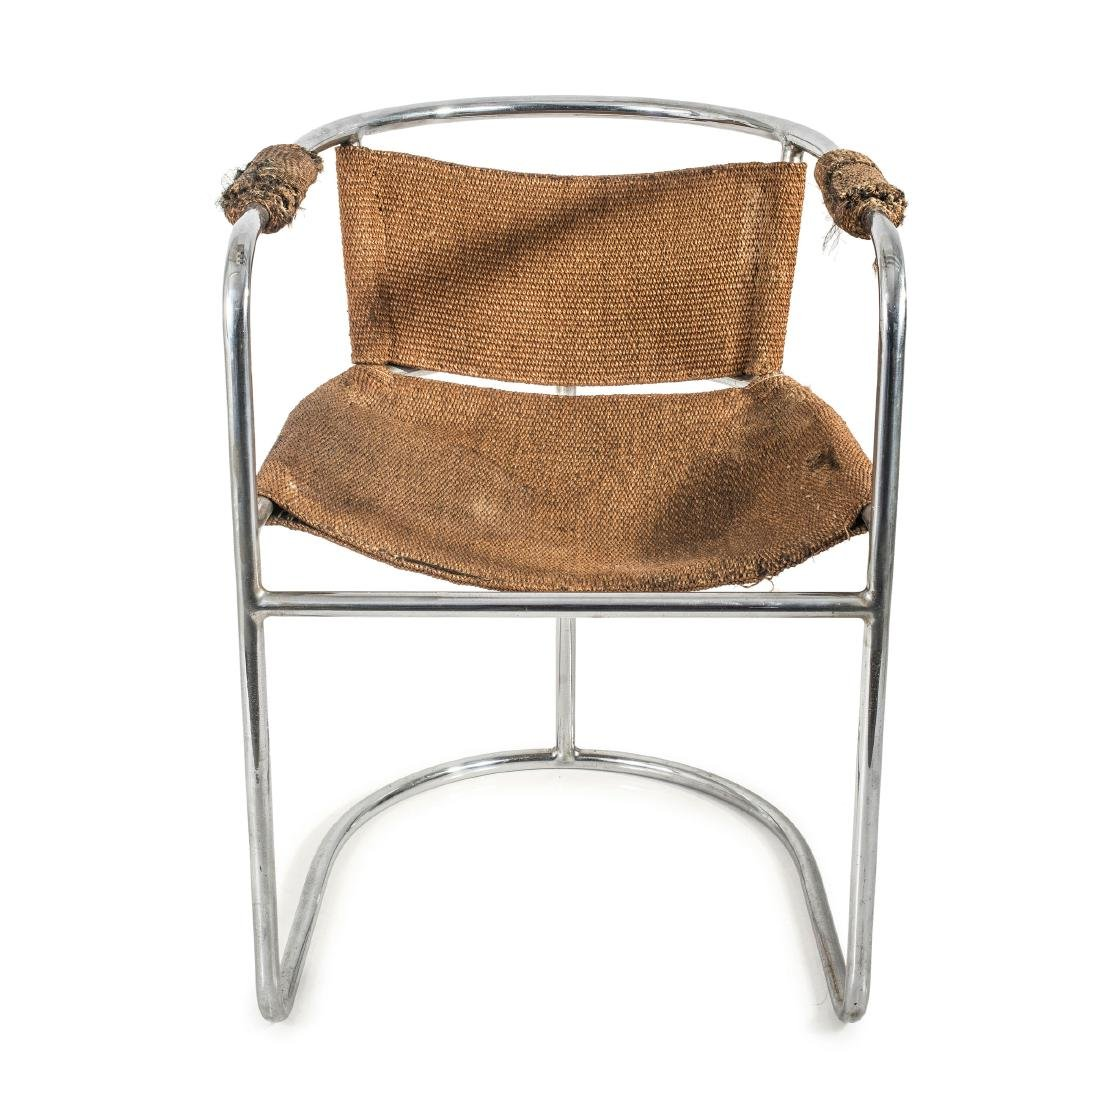 Tubular steel chair c. 1938 - 2